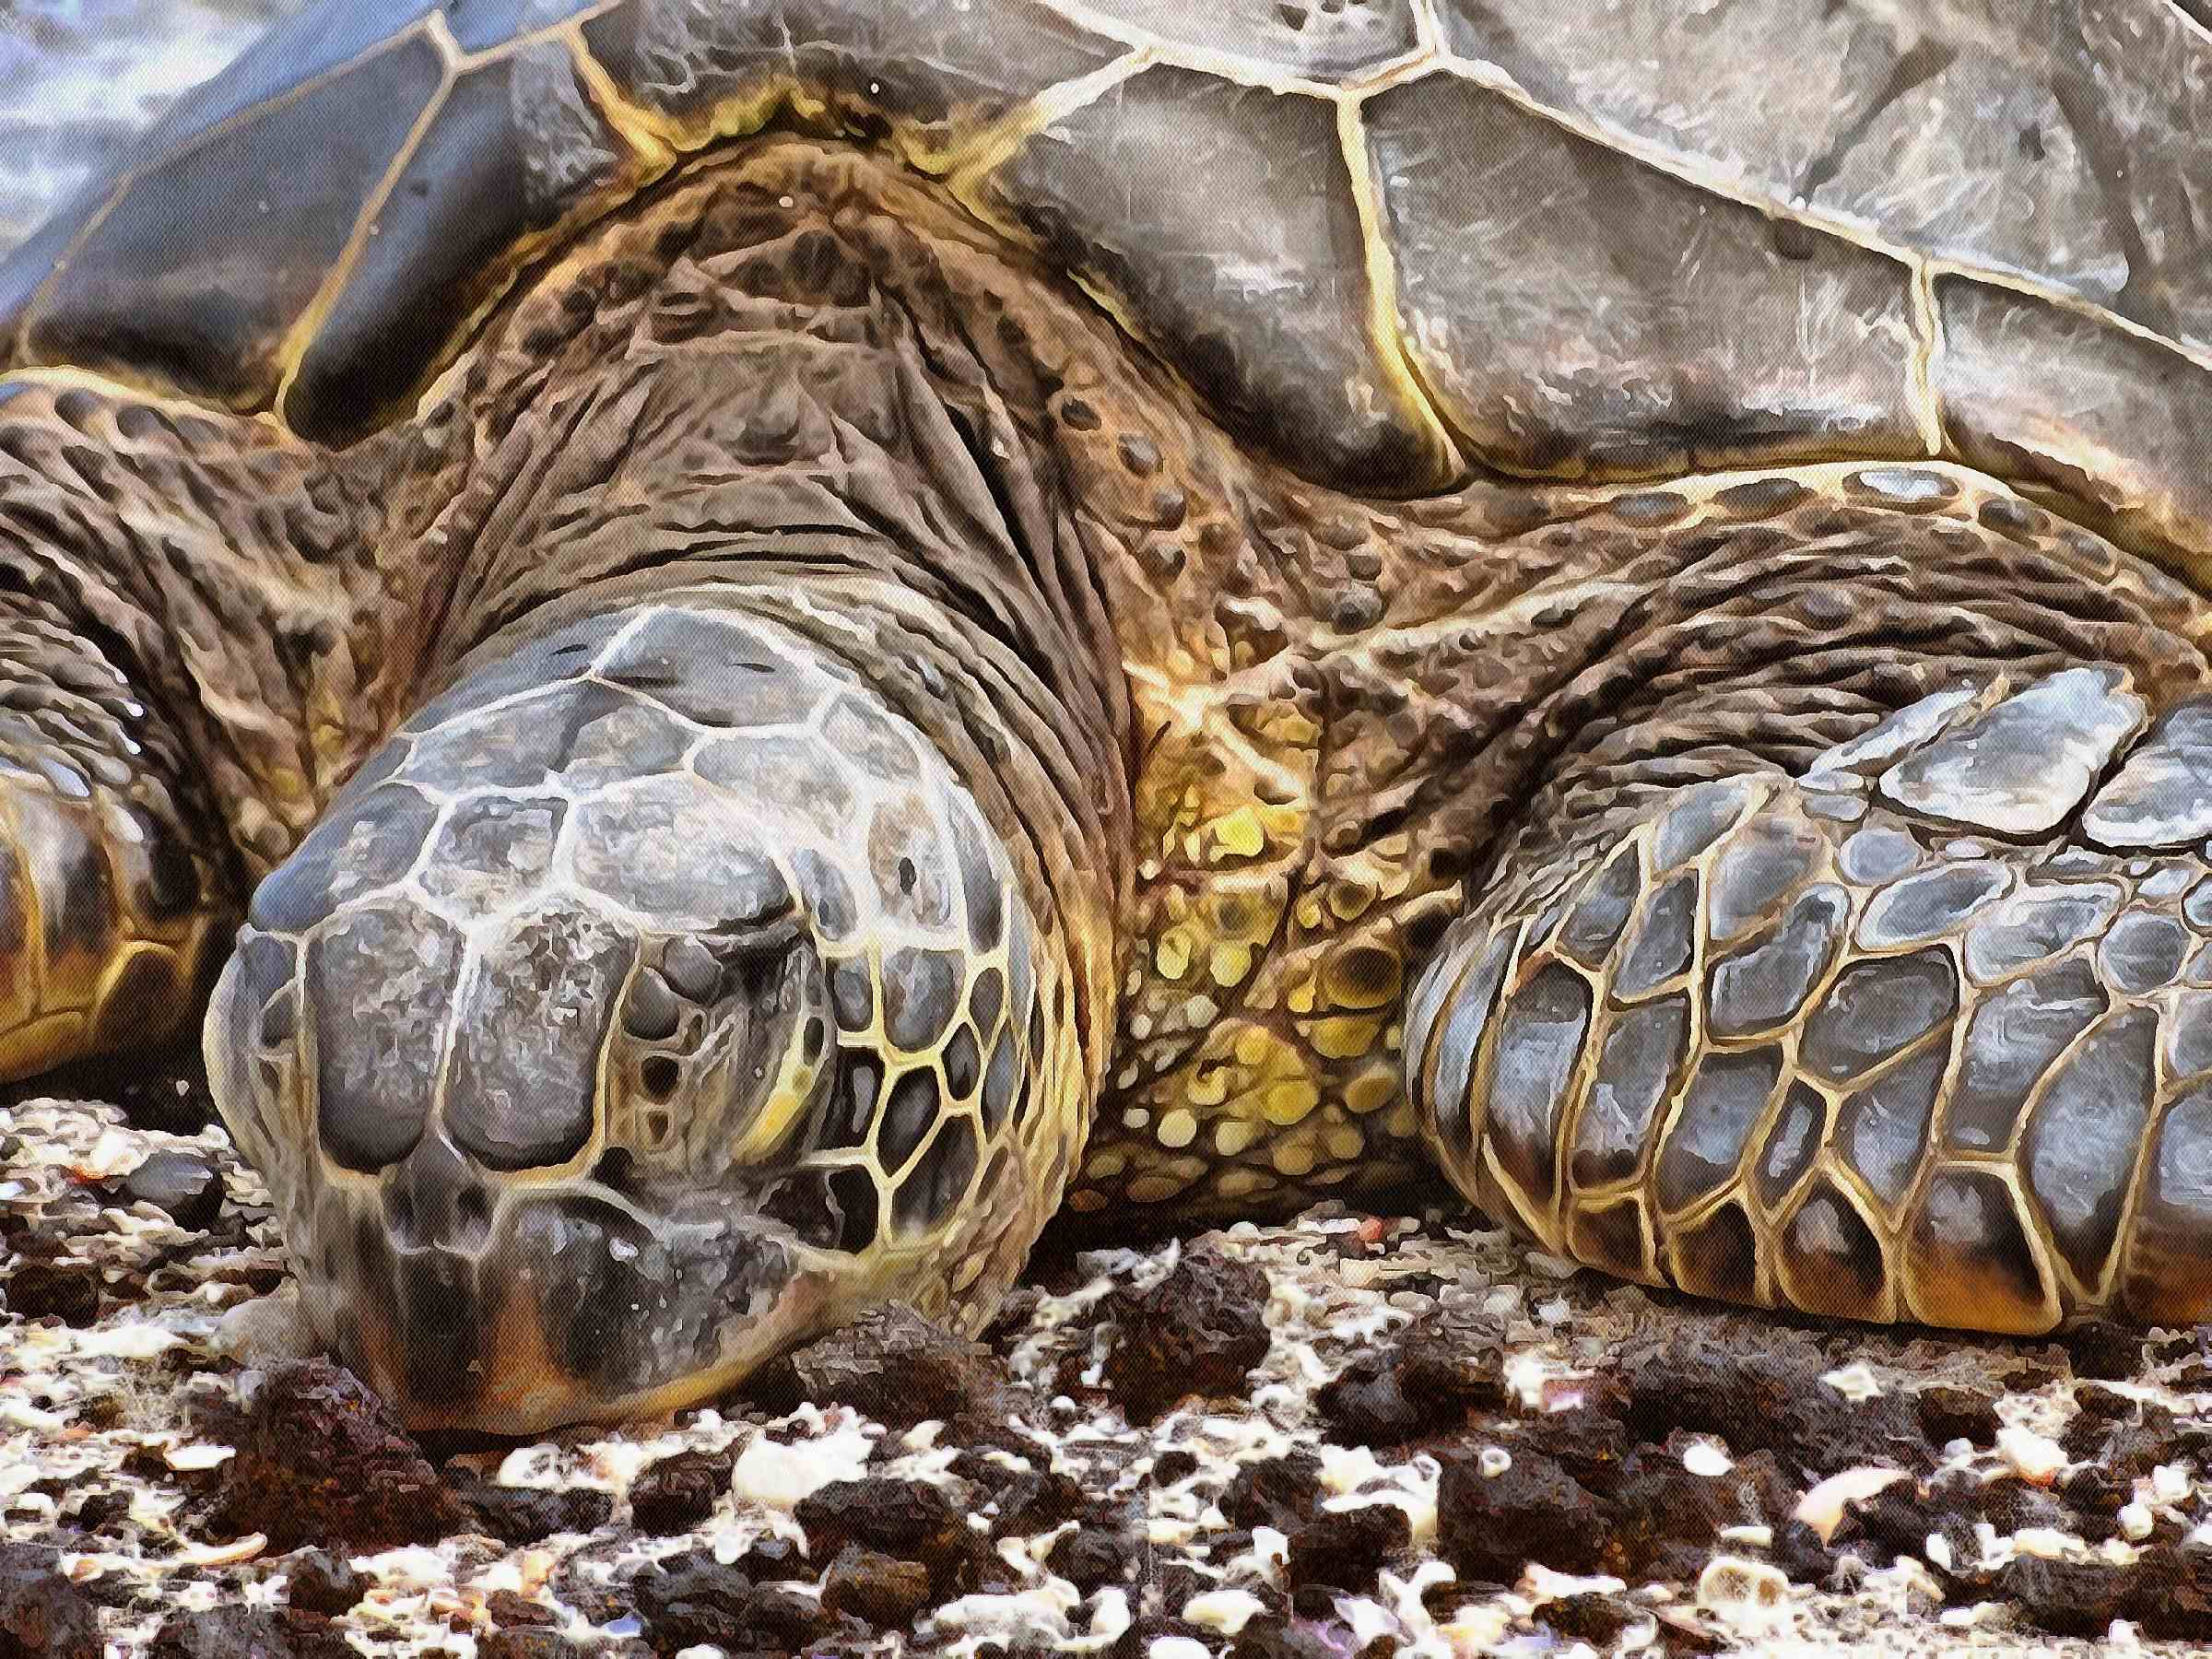 Turtle, Tortoise, Turtle free images, chelonian, leatherback, turtle, – Turtle free images, Tortoise free , Turtle stock free images, Download free images turtles, tortoise free public domain images, tortoise public domain images!